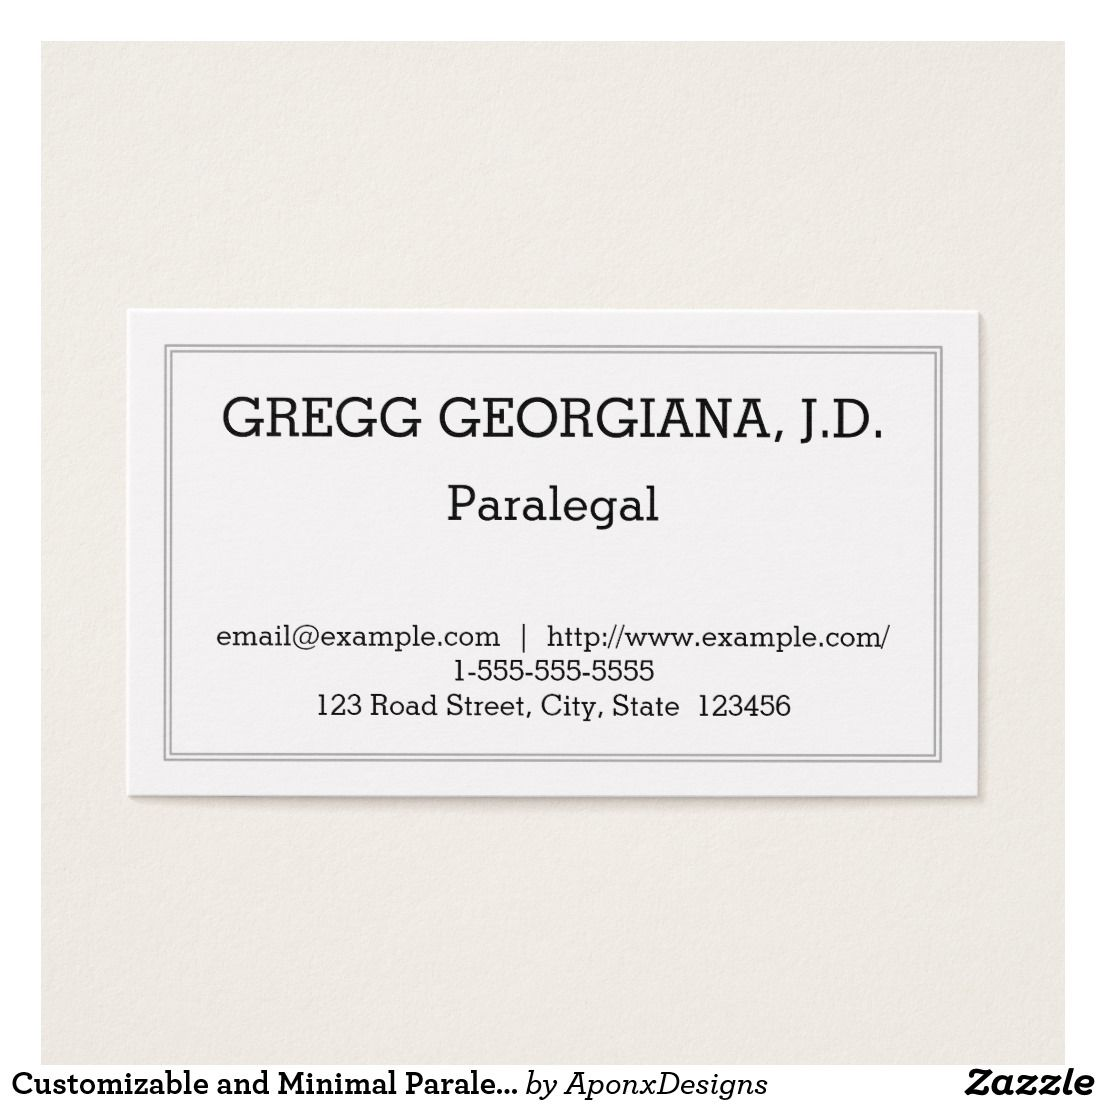 Customizable and minimal paralegal business card customizable customizable and minimal paralegal business card colourmoves